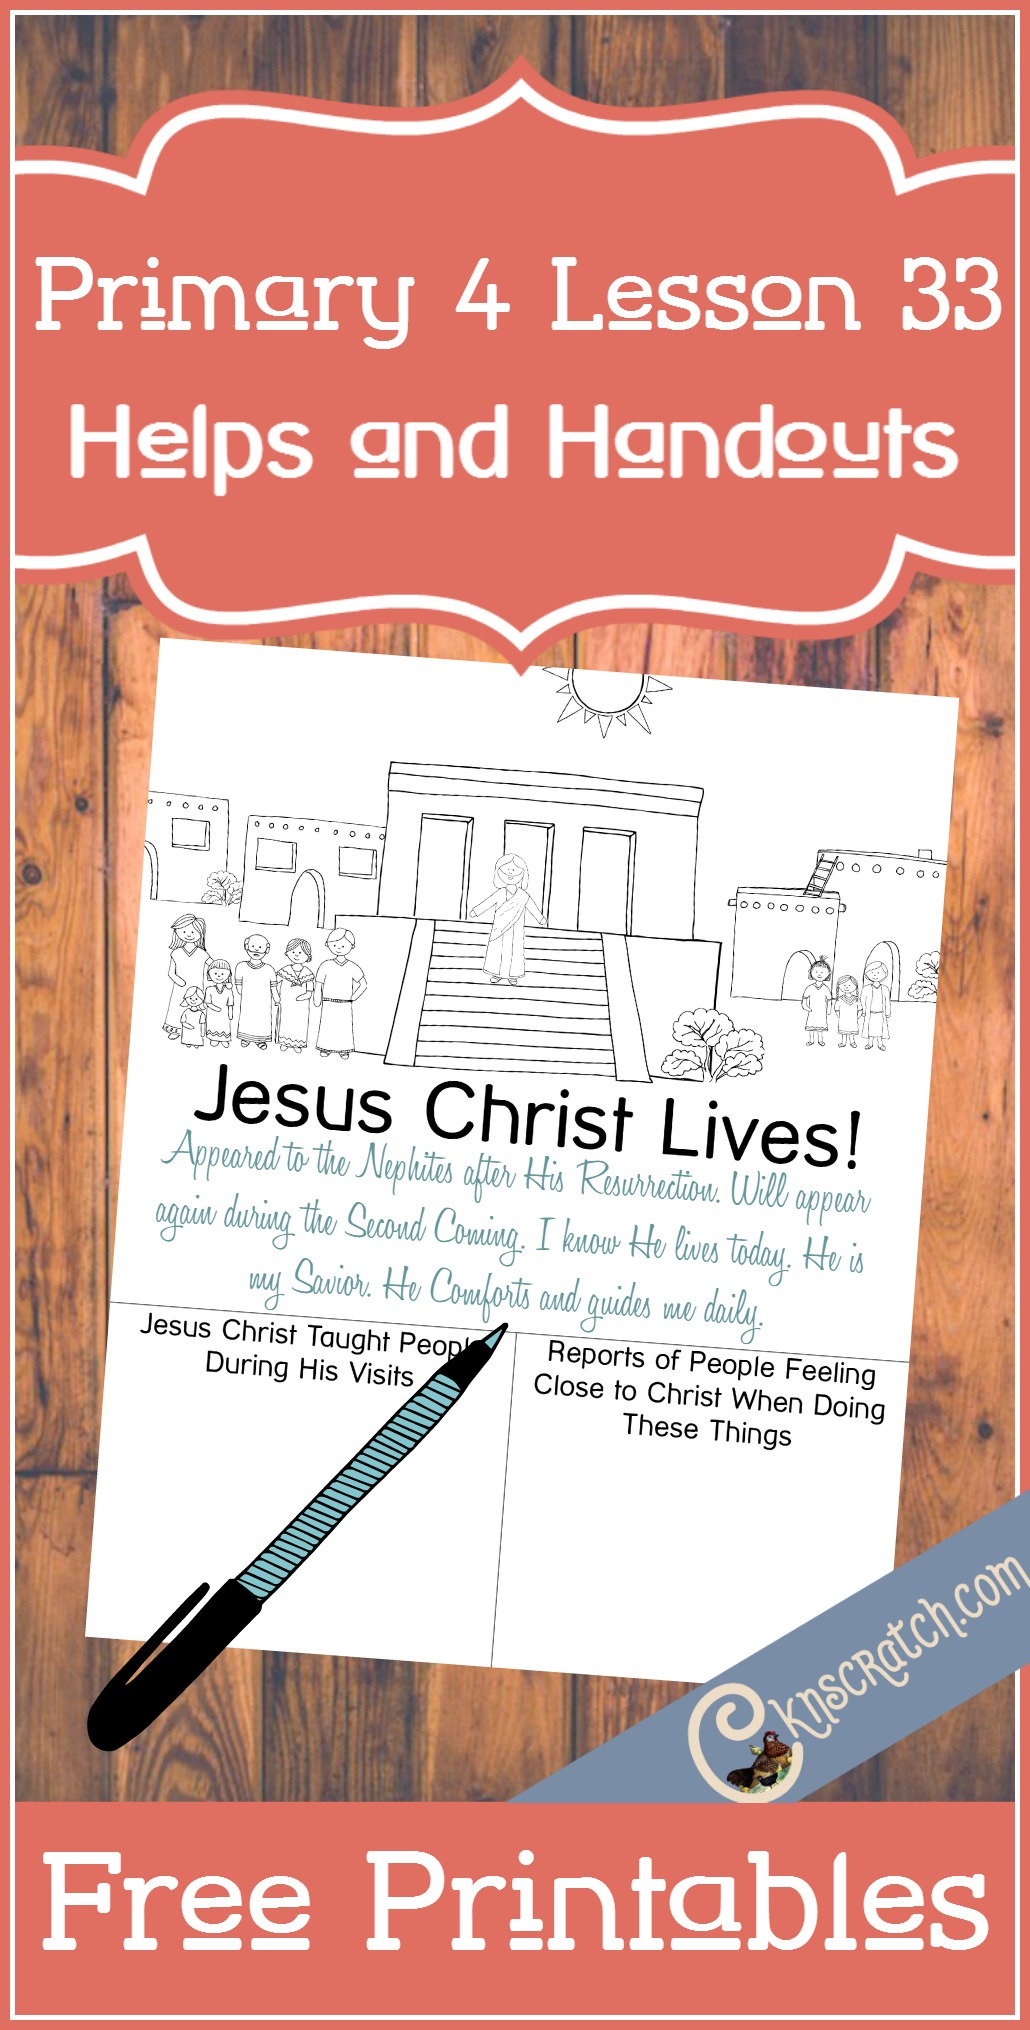 Great free LDS handouts plus loads of resources to help you teach Primary 4 Lesson 33: The Savior Appears to the Nephites